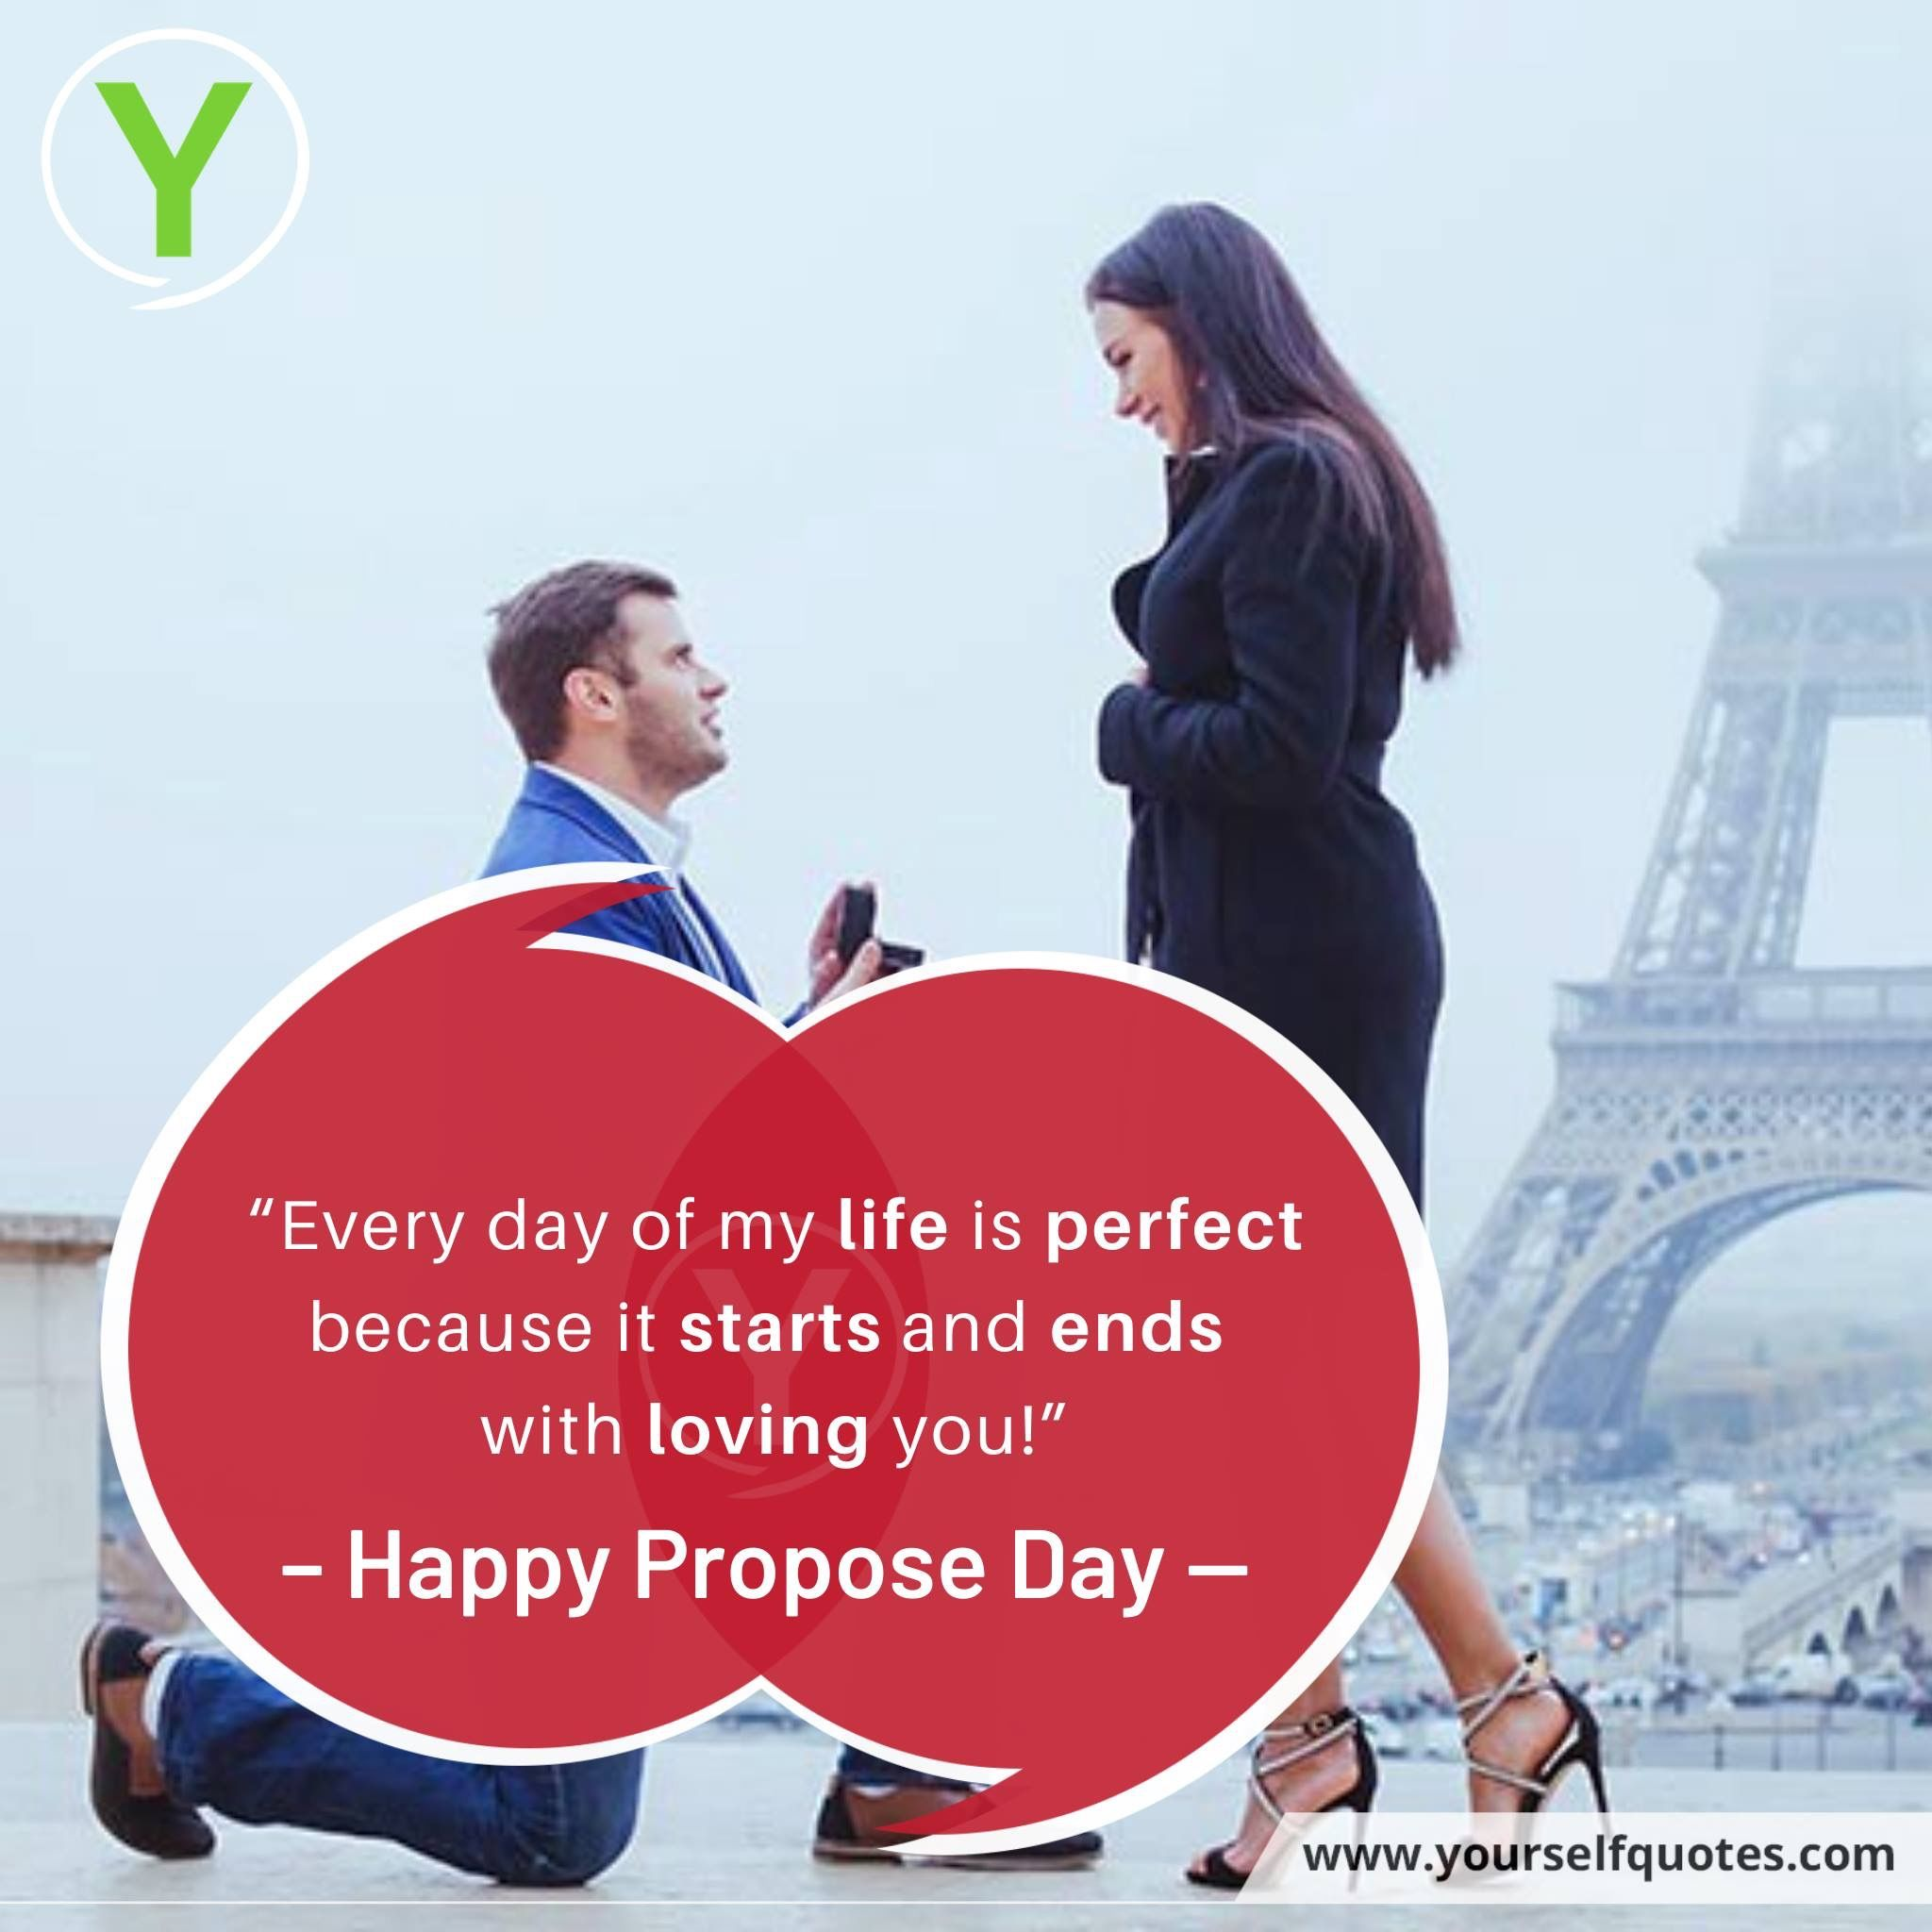 """""""Every day of my life is perfect because it starts and ends with loving you!"""" – #HappyProposeDay #ValentineWeek #ValentinesDay #Yourselfquotes #Quote #quotesdaily #valentines #thegoodquotes #valentinesgift #lovers_amazing_group #lovereading #bbkivines #mylove #lovequotesforhim #lovequotesforher #lovewhatyoudo #valentines_day #feedyourmind #valentinesday2020 #valueyourself #lifequotes💜 #lovelifequotes #yourstory #quotes #motivateyourself #betteryourself #yourselfquotes"""